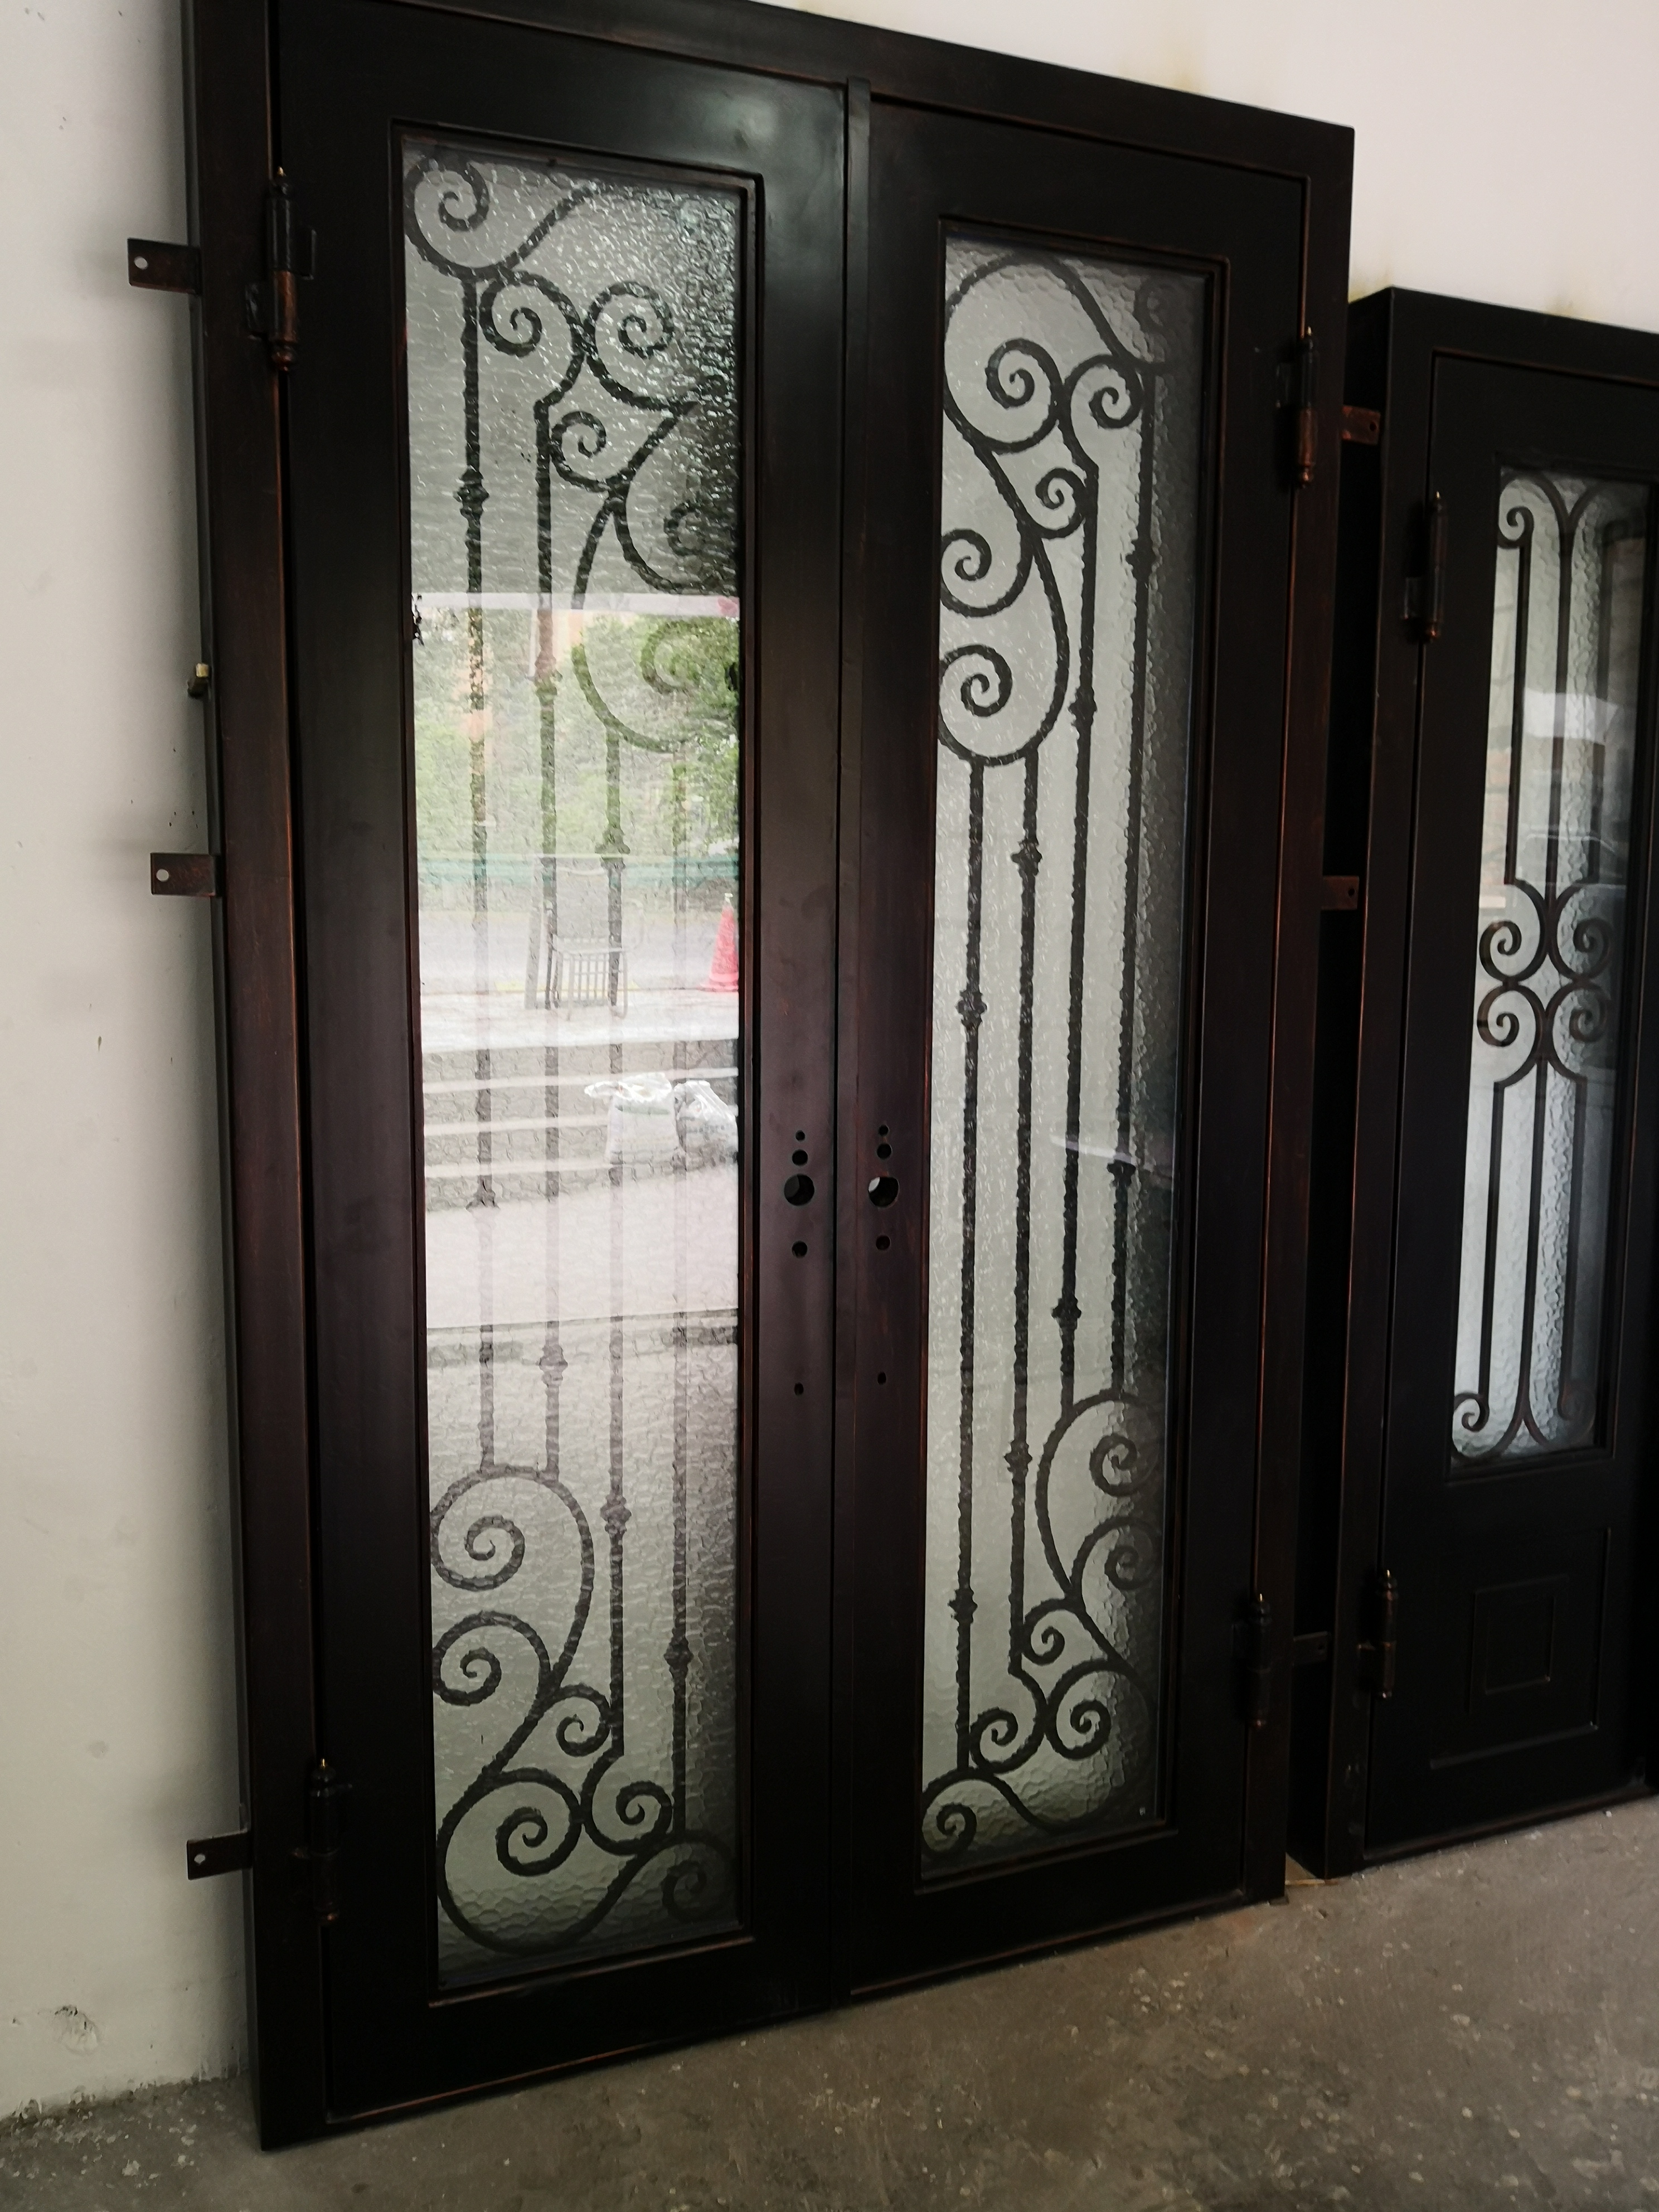 Hench 100% Steel Iron Doors  Model Hc-id110